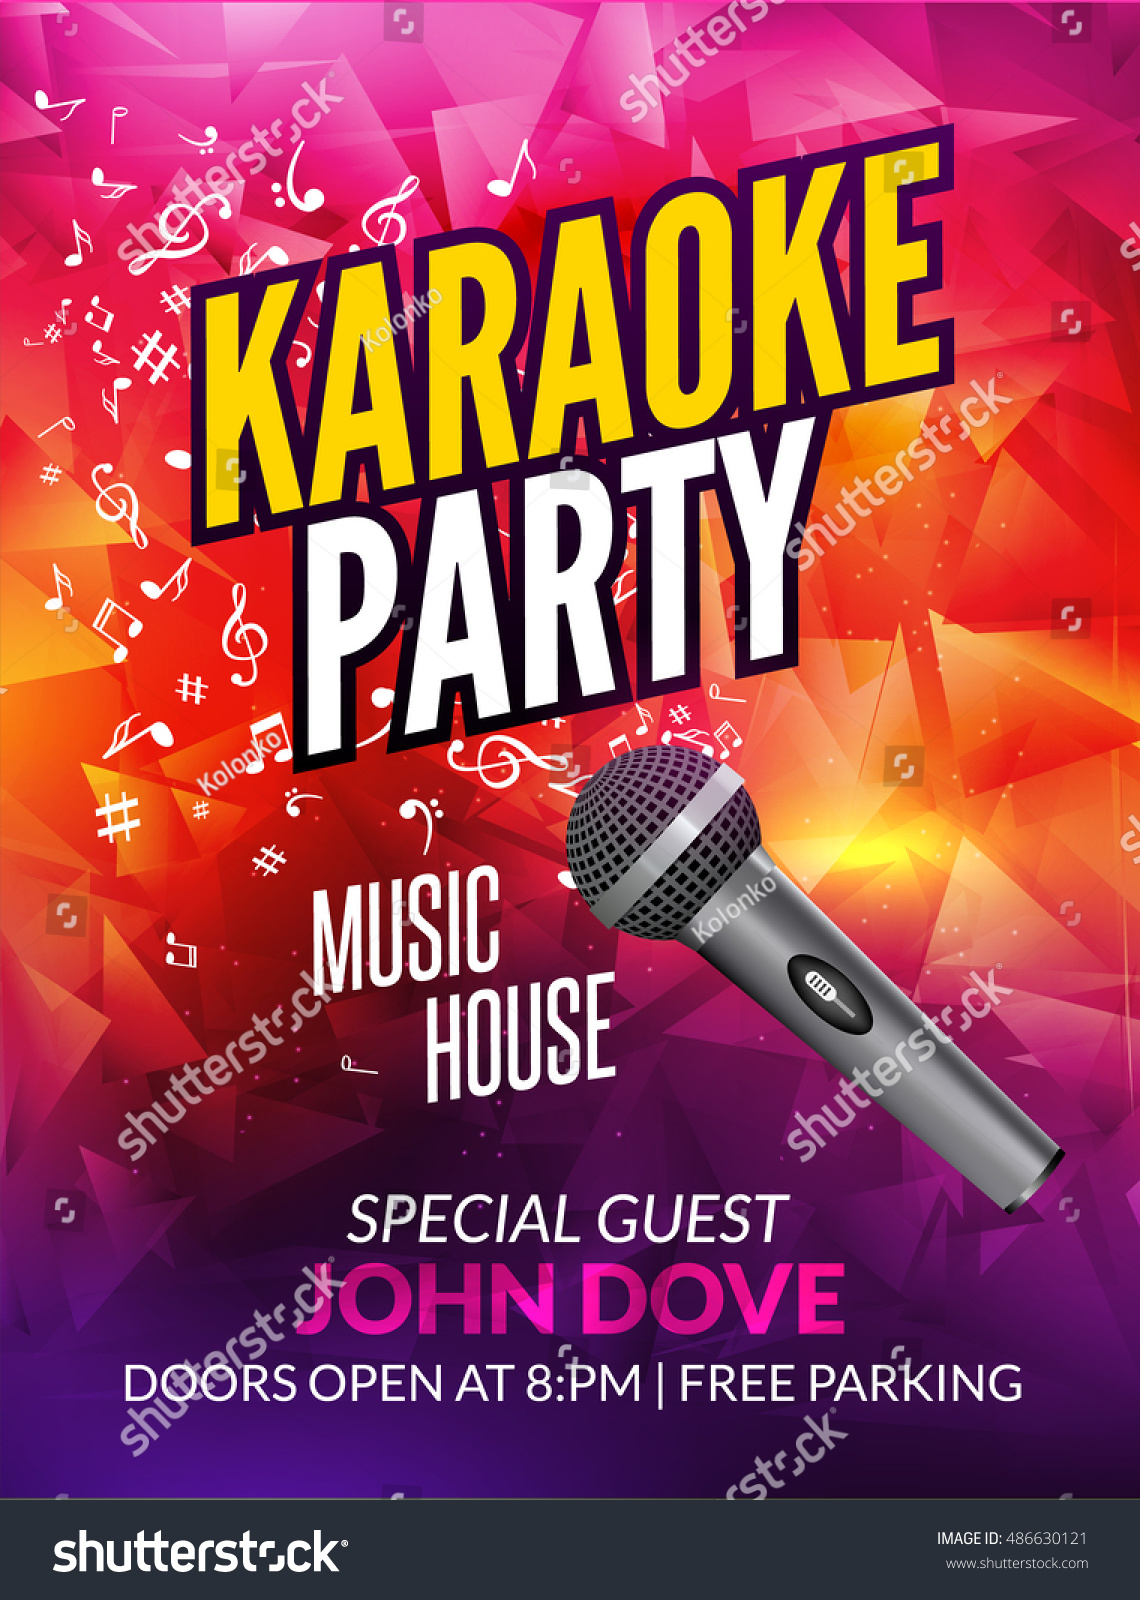 Poster design music - Karaoke Party Invitation Poster Design Template Karaoke Vocal Night Flyer Design Music Broadcast Voice